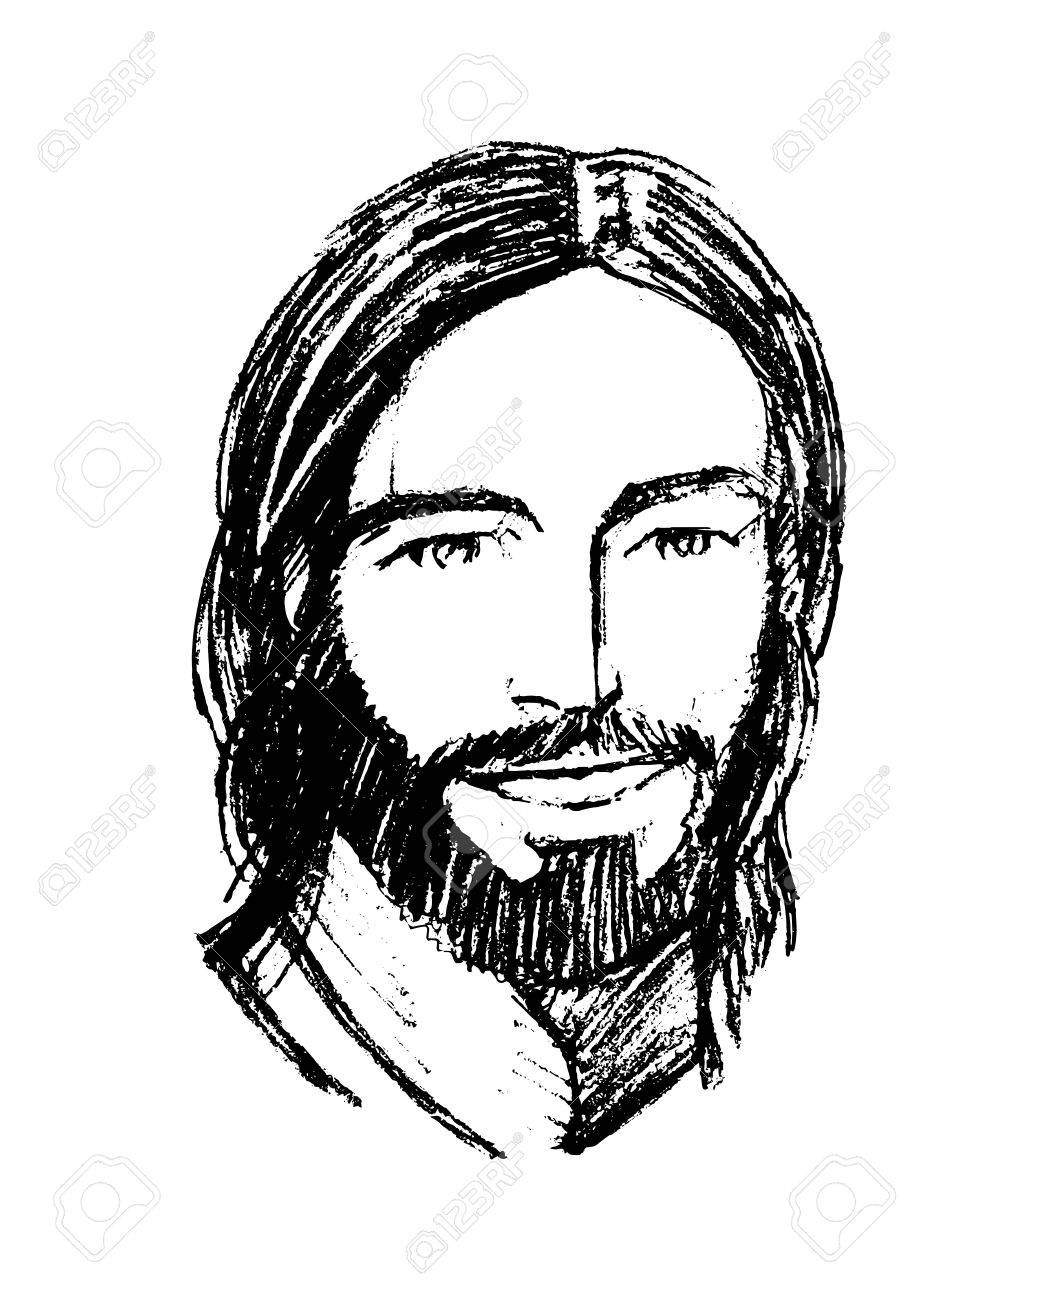 1039x1300 Hand Drawn Vector Illustration Or Drawing Of Jesus Christ Smiling